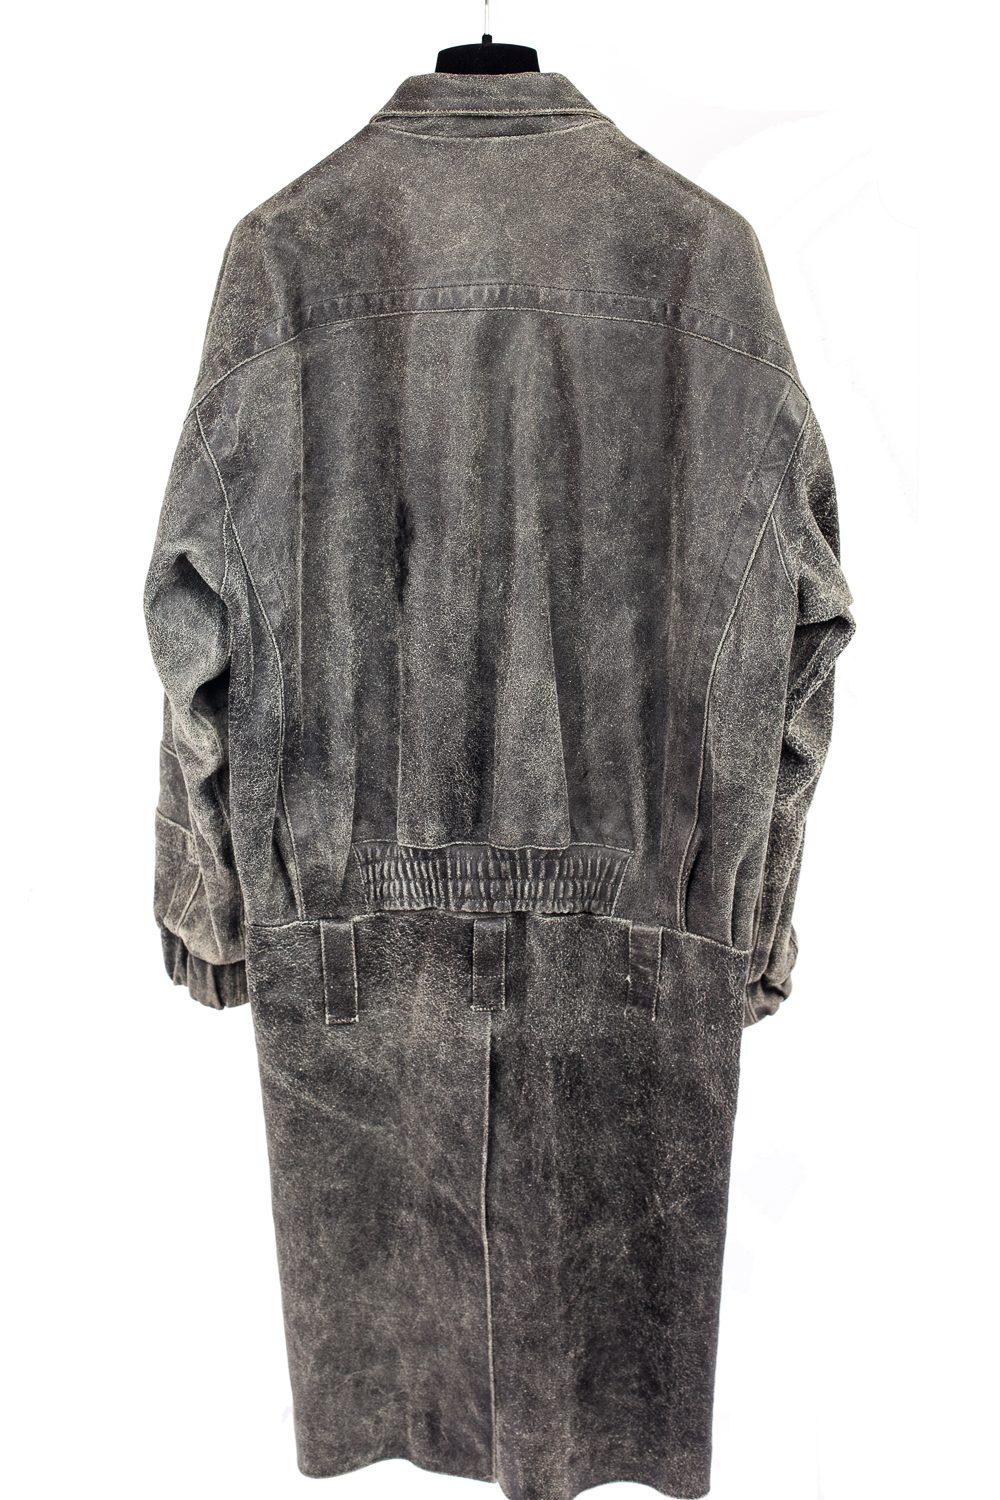 "AW02 ""Virginia Creeper"" Distressed Leather Coat"